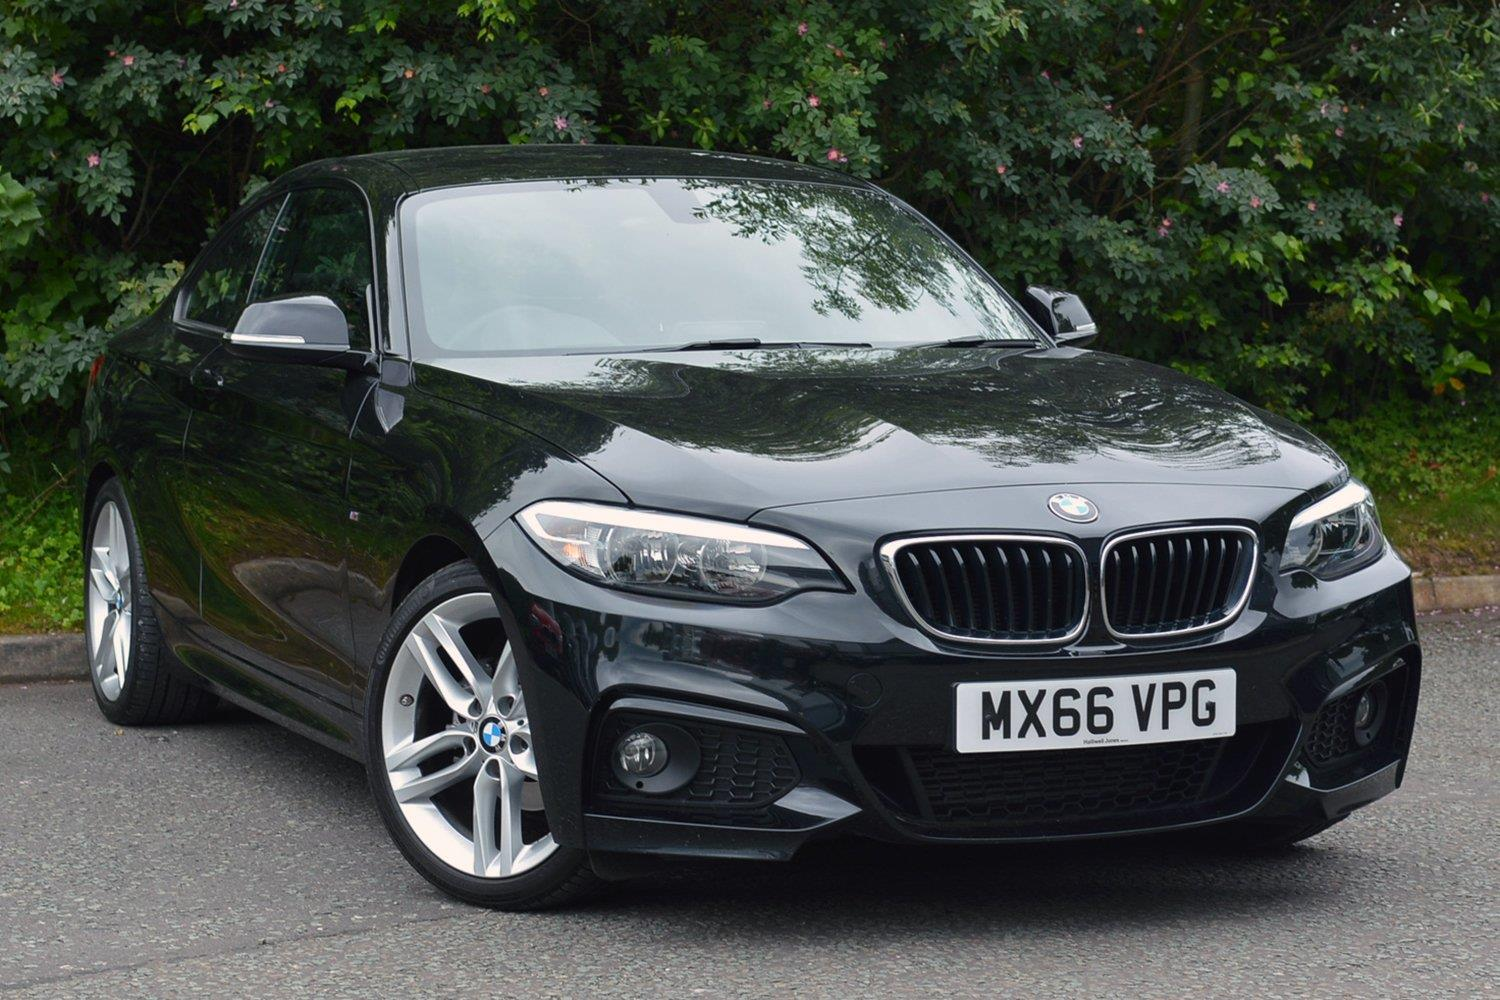 BMW 2 Series Coupé MX66VPG - Image 7